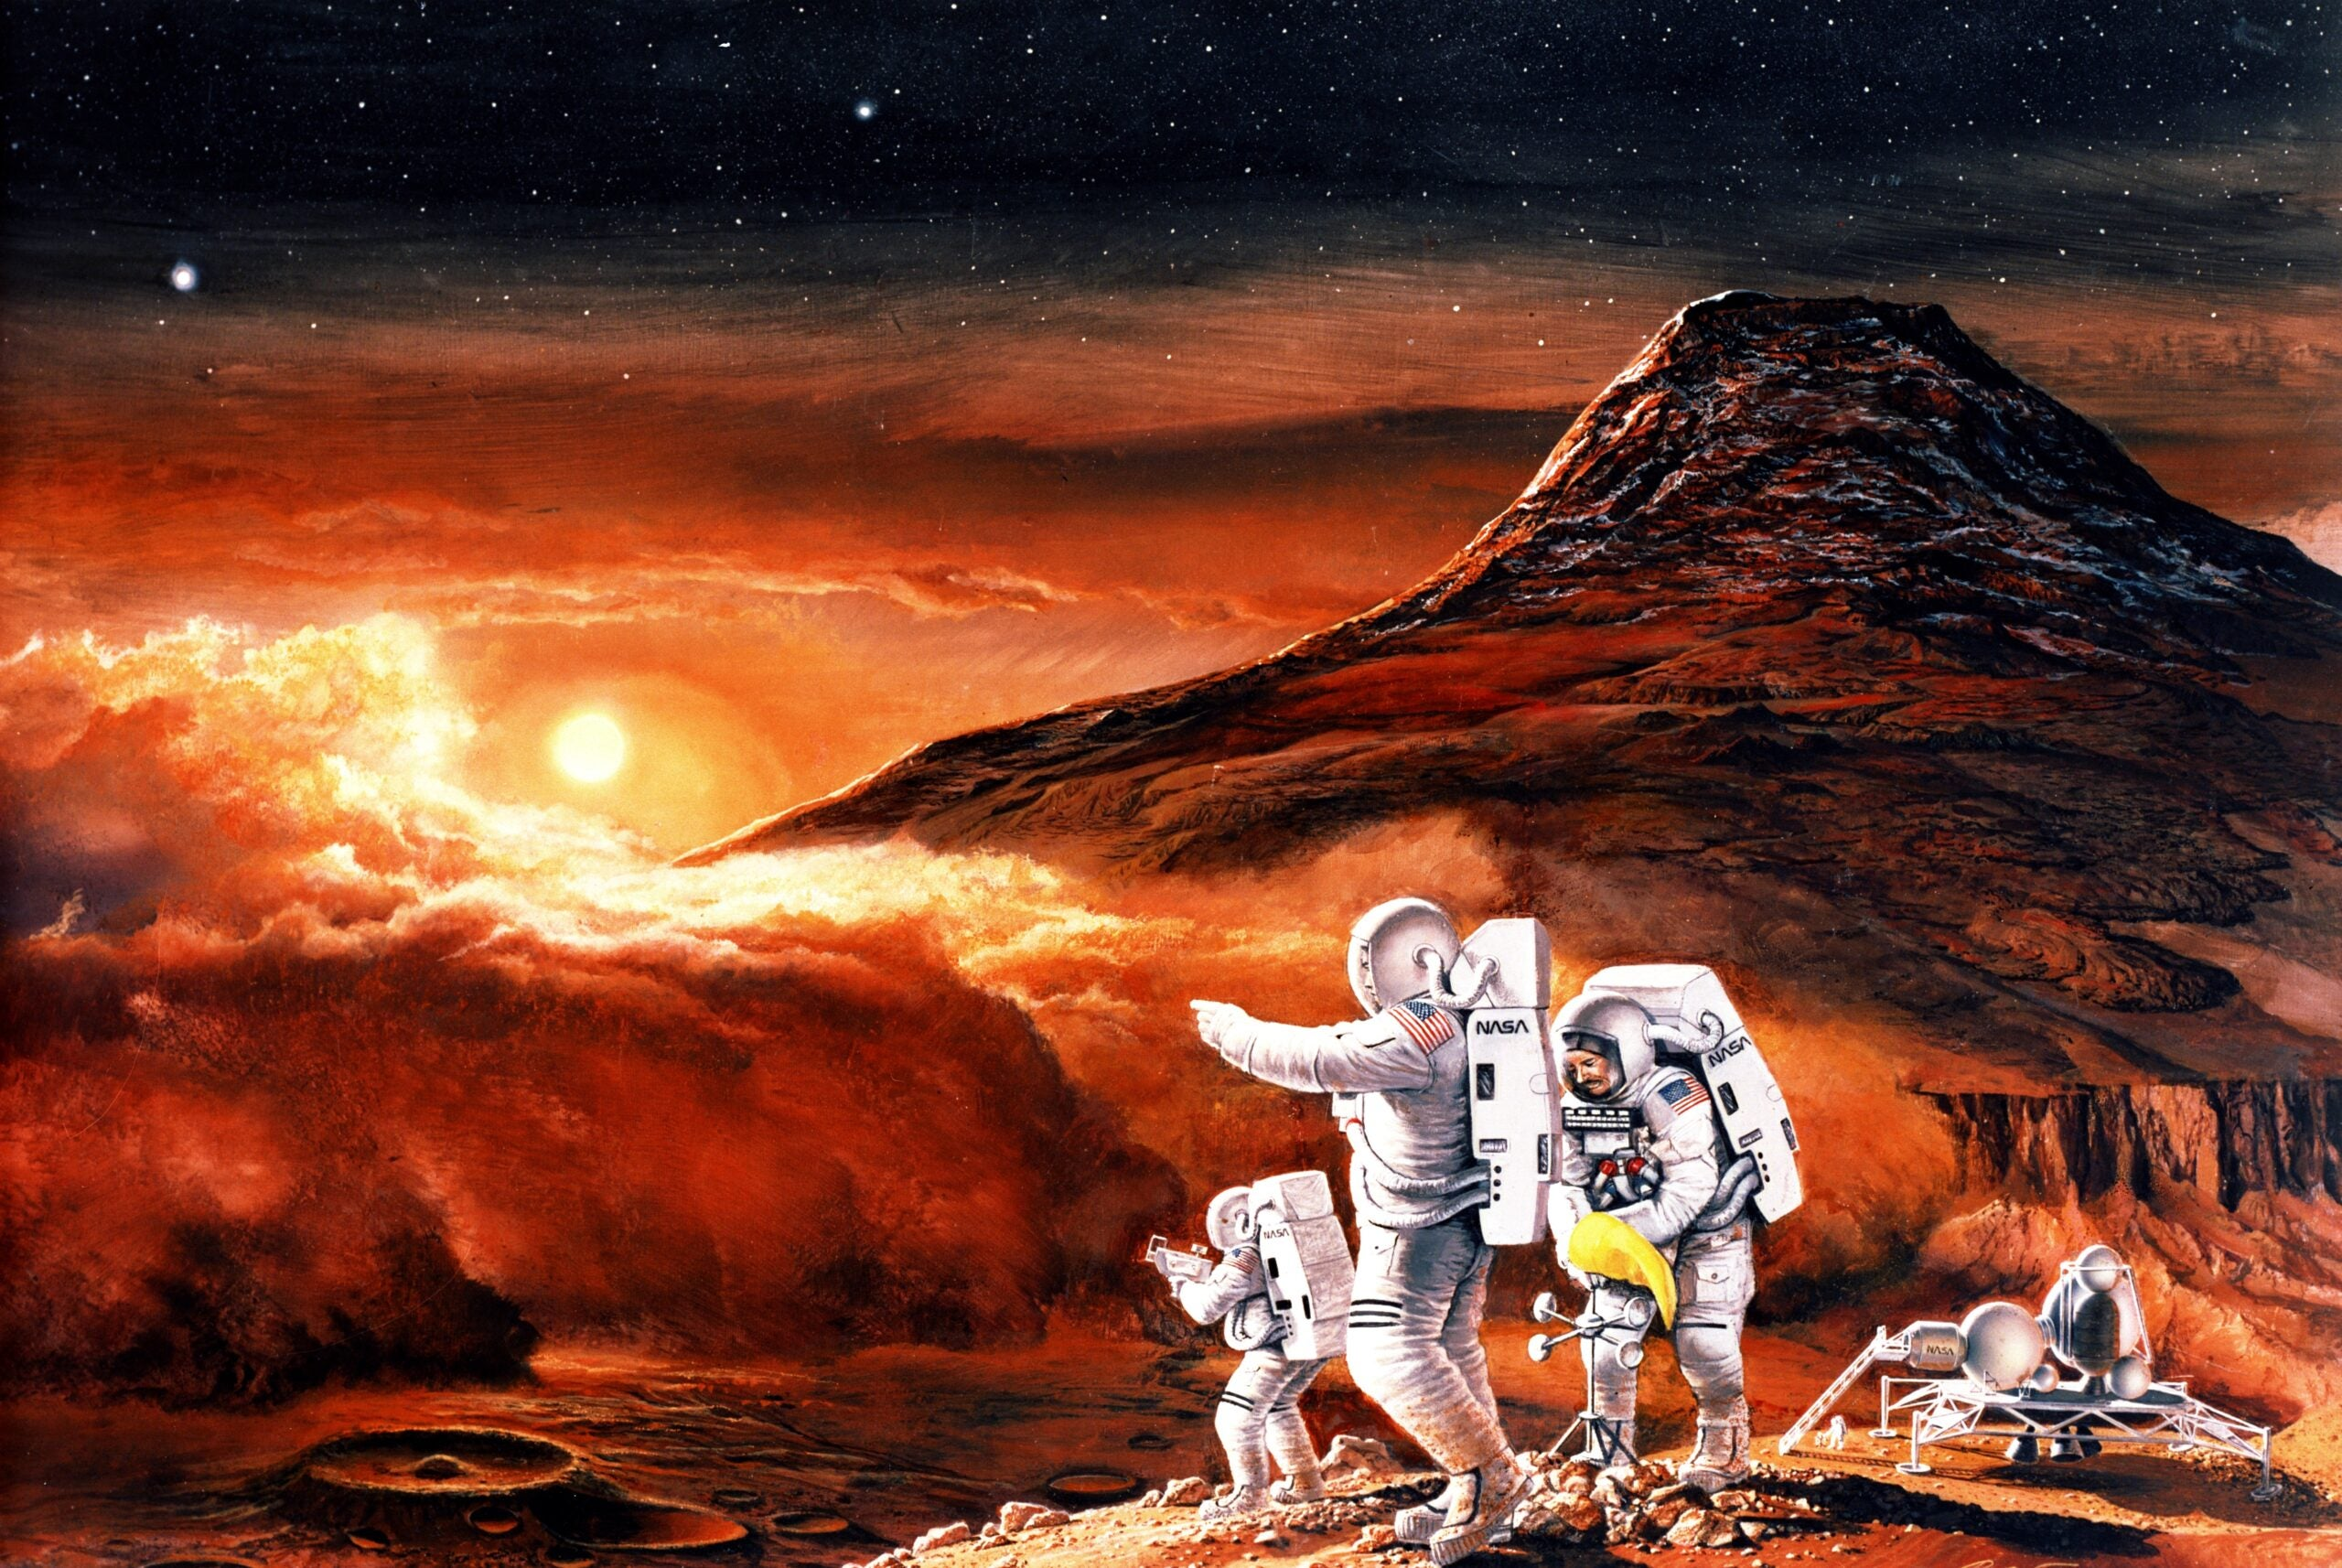 Concept drawing of the first human explorers on Mars